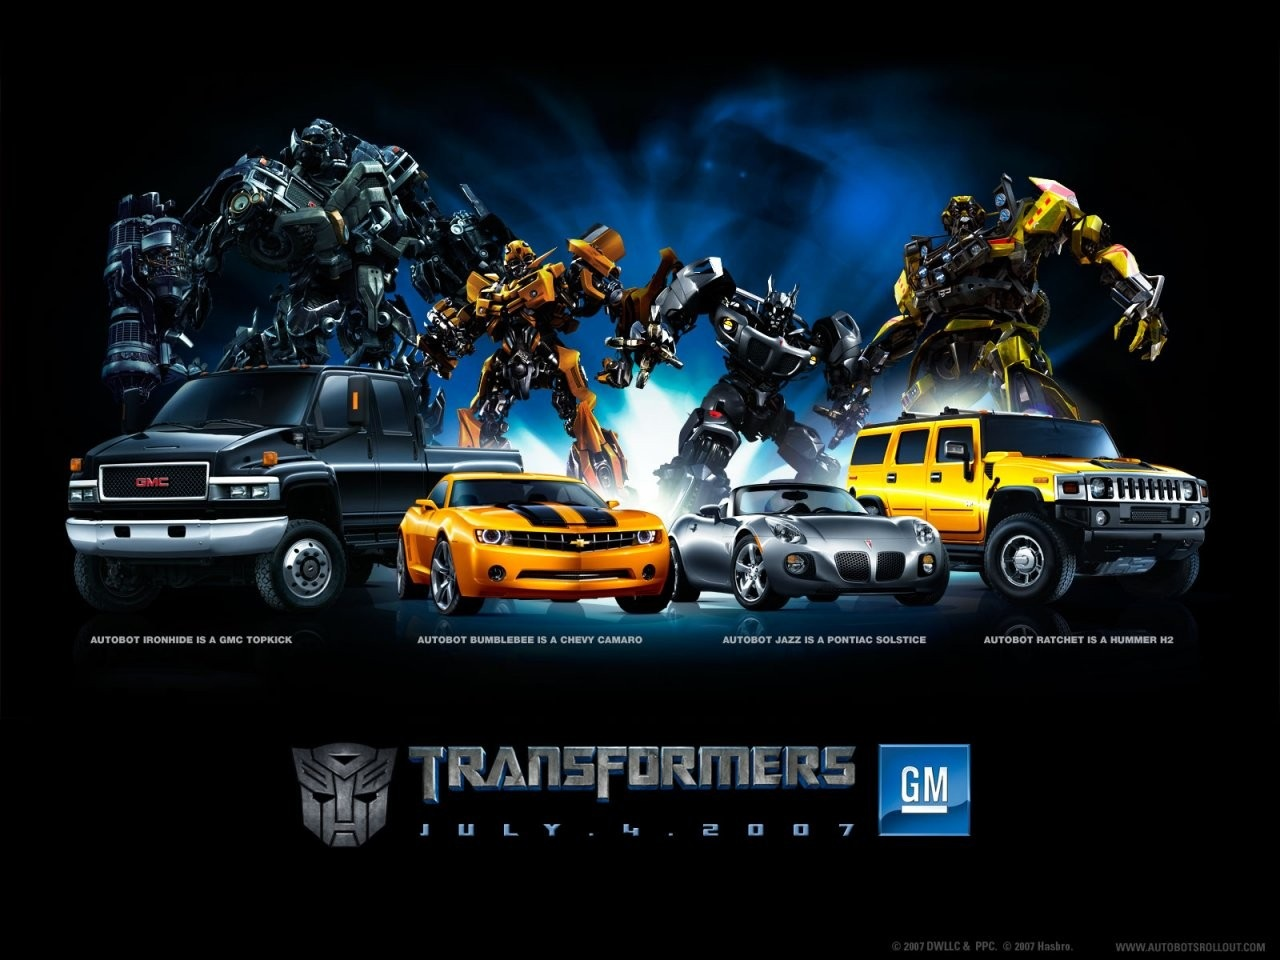 Transformers Movie Trailer|Download Transformers 3 Movie ...